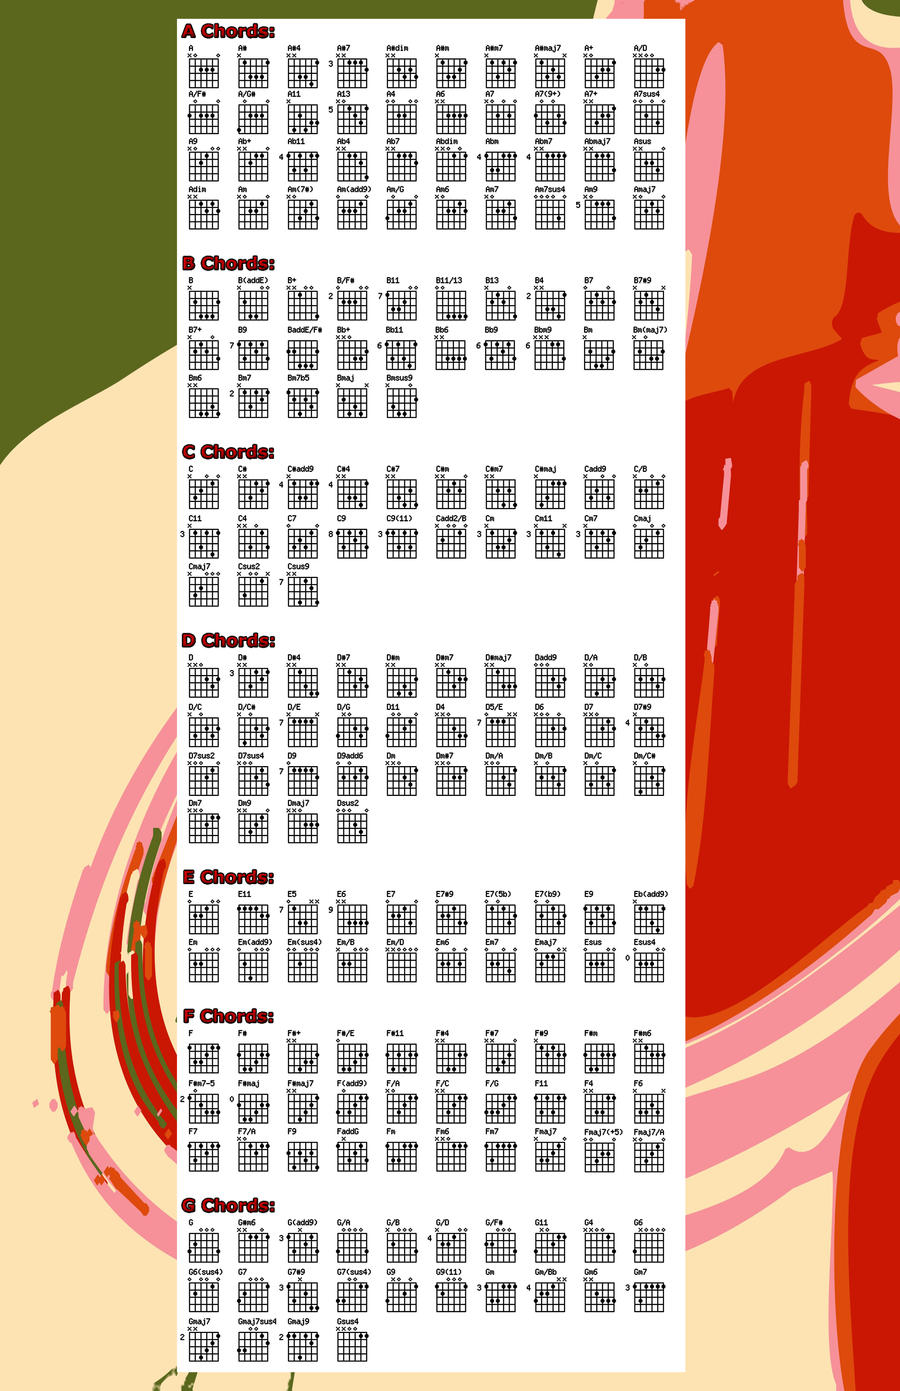 Guitar Poster with ALL Chords by Frabulator on DeviantArt